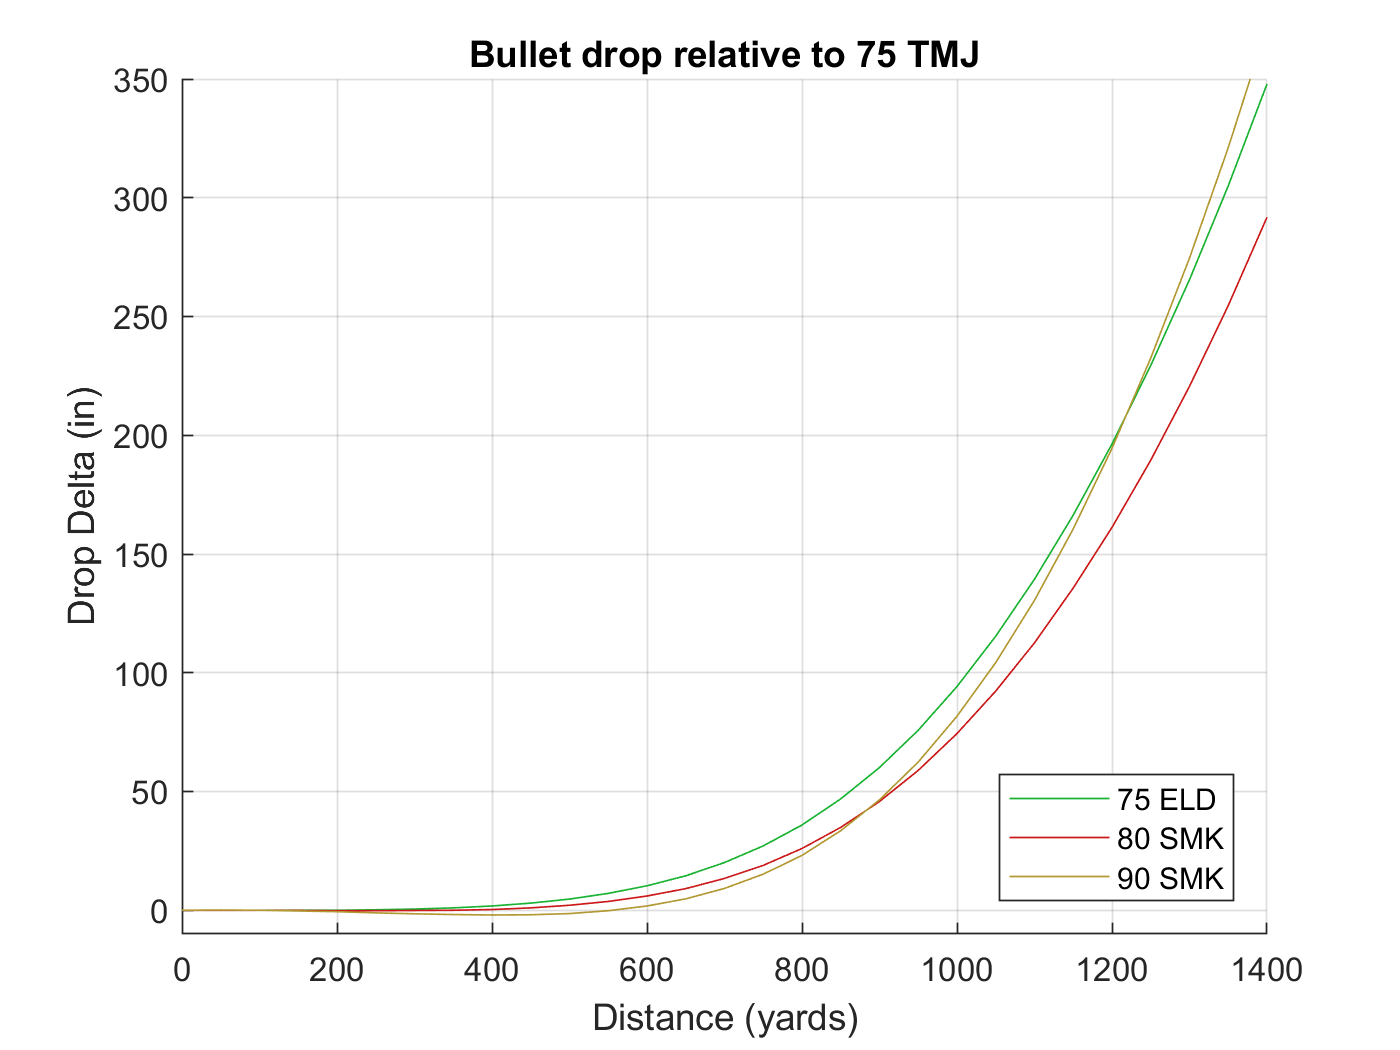 trajectory comparisons over 1400 yards don't look very good  so here i've  subtracted the 75 tmj drop from those of the other three projectiles